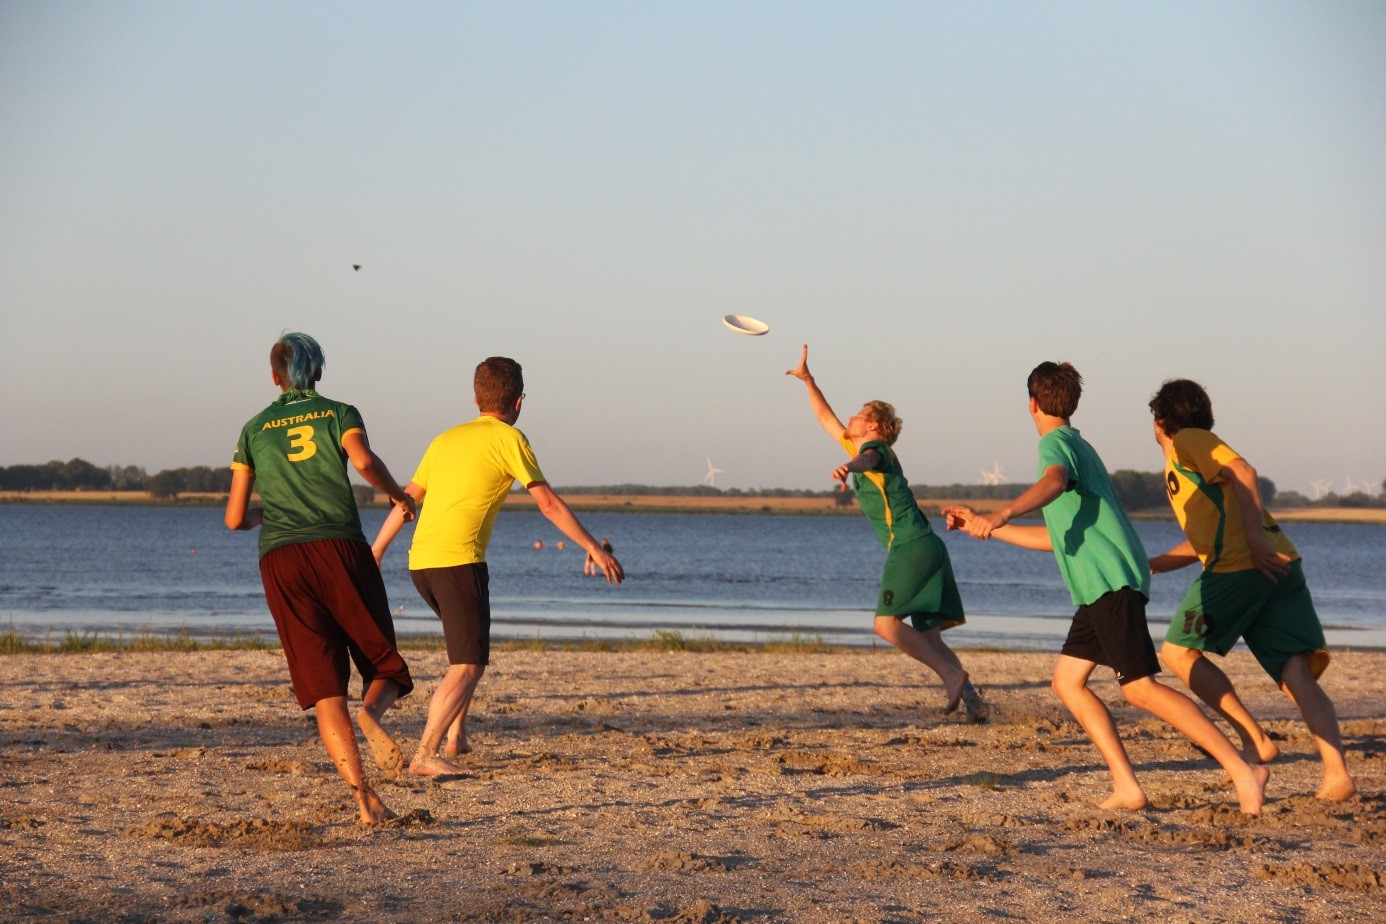 5. Frisbeeturnier am Strand in Eldena